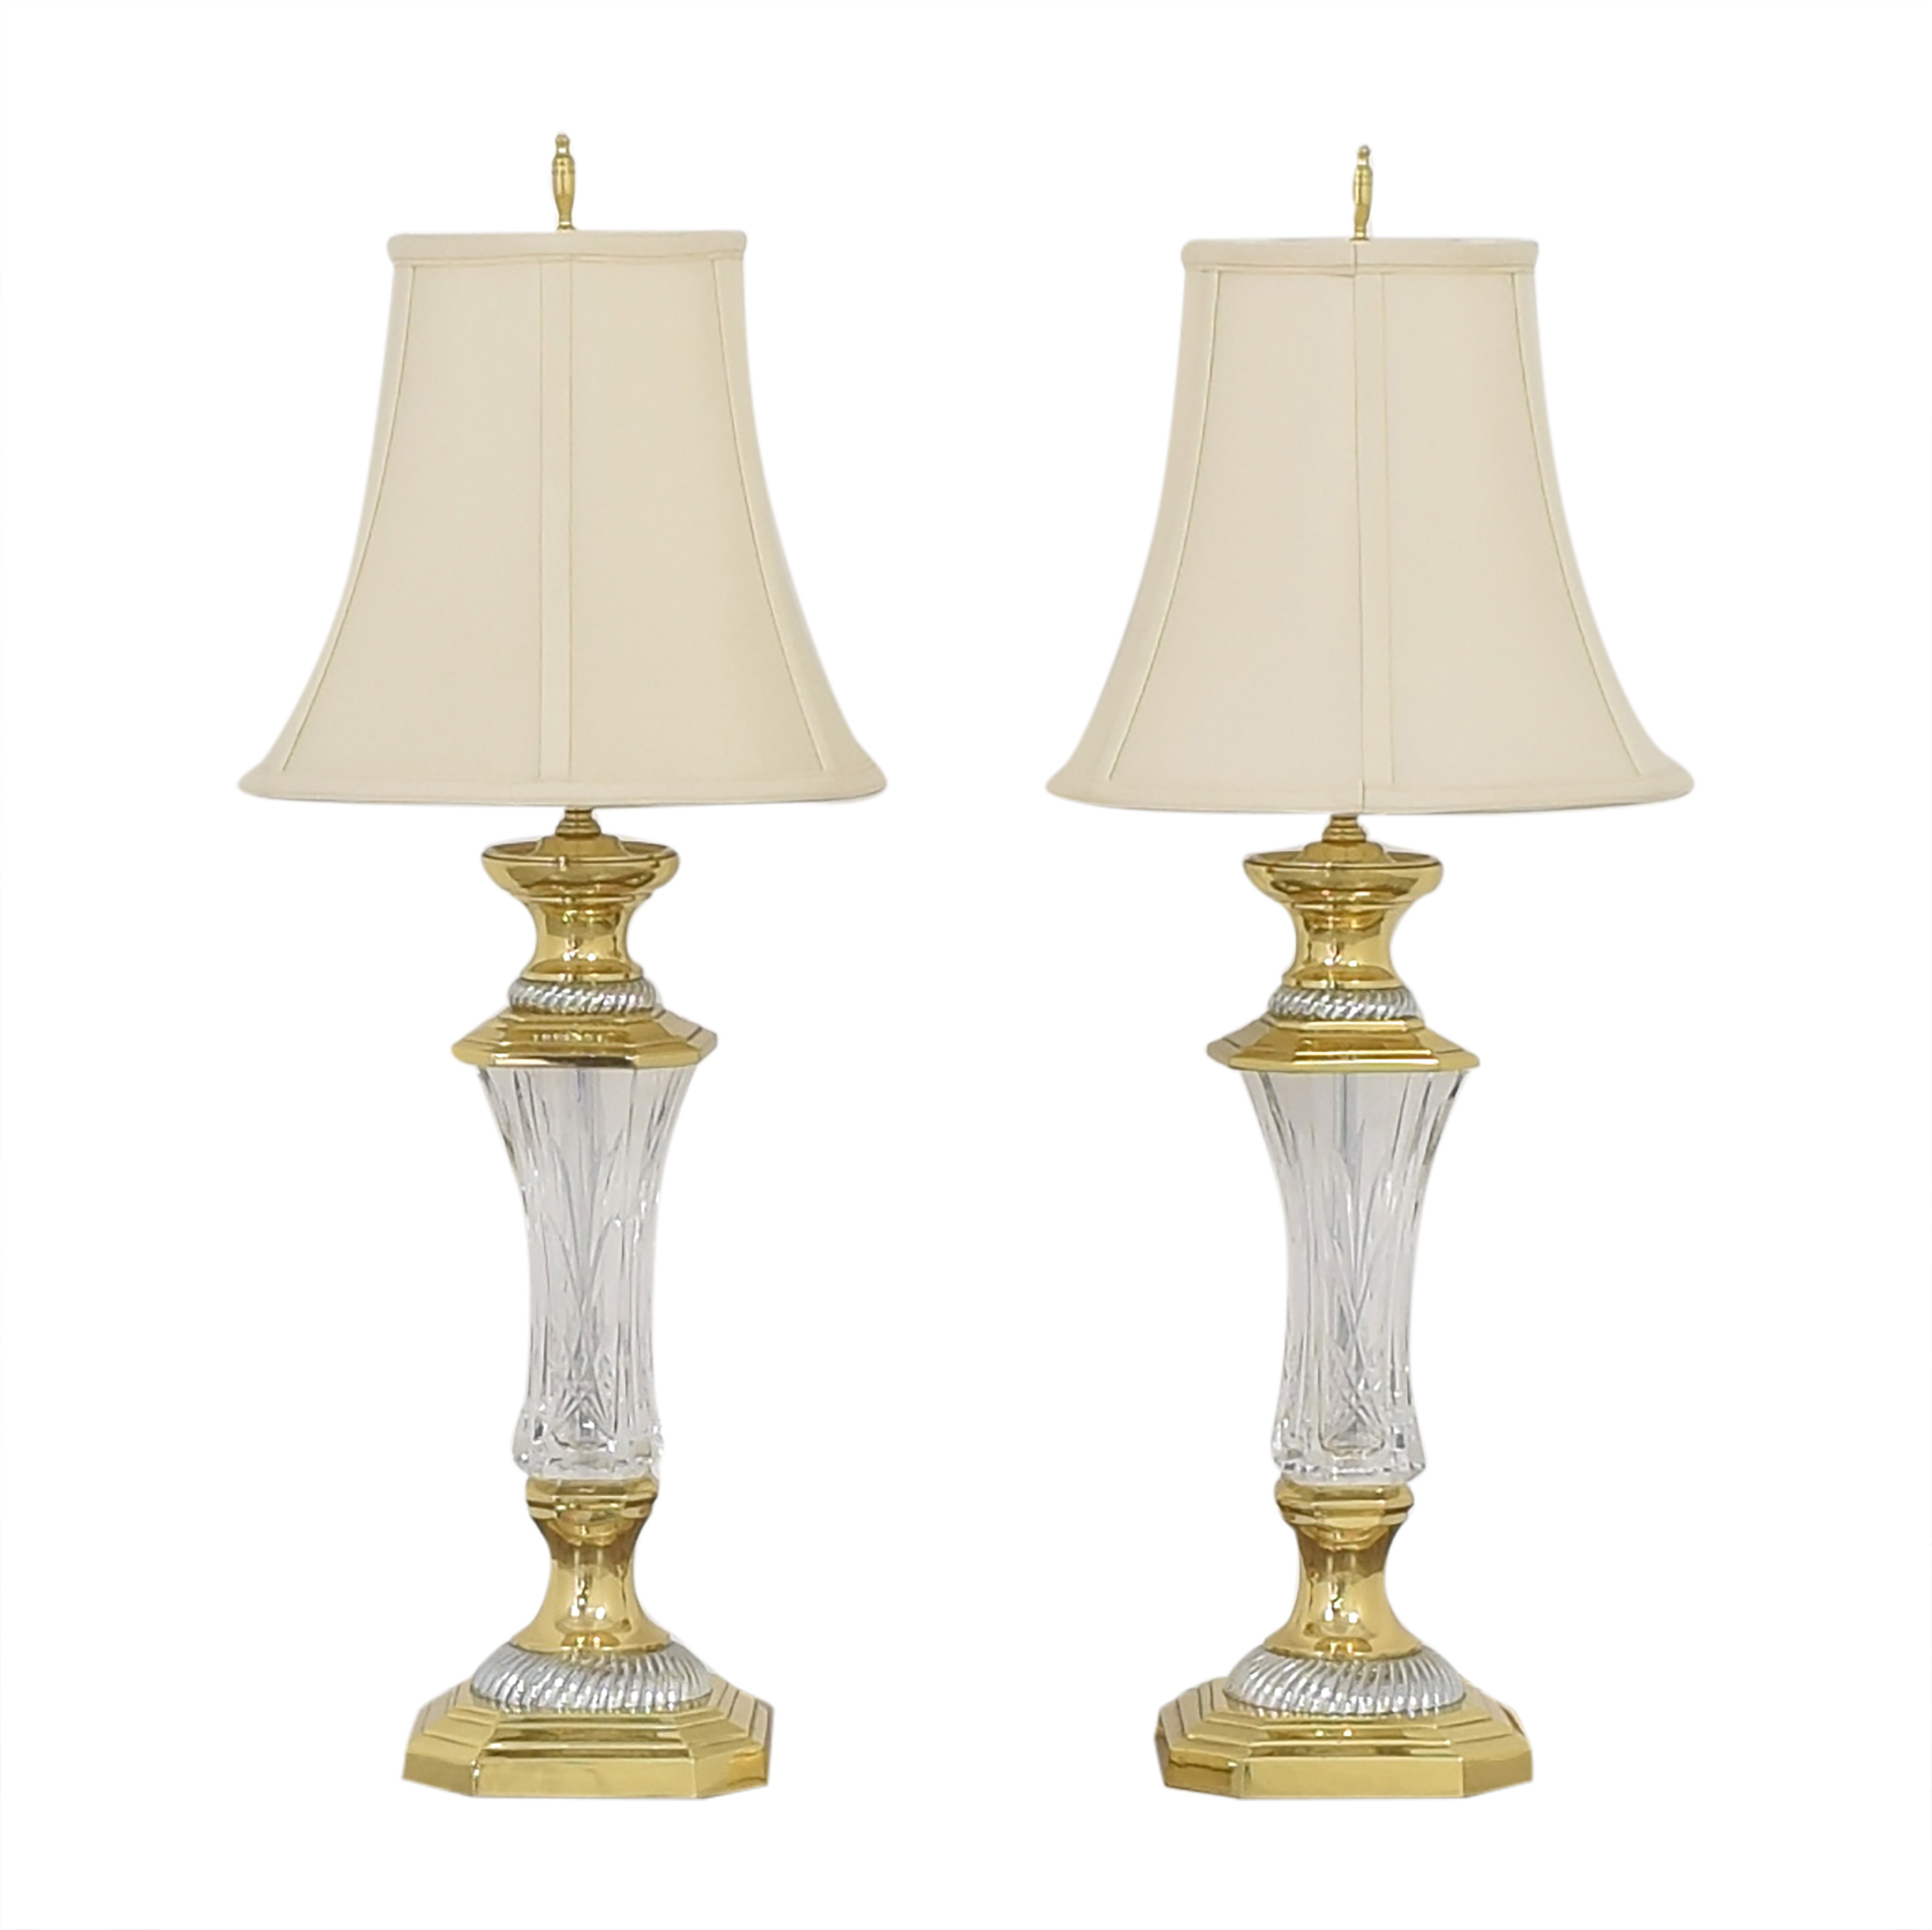 Waterford Waterford Florence Court Table Lamps for sale